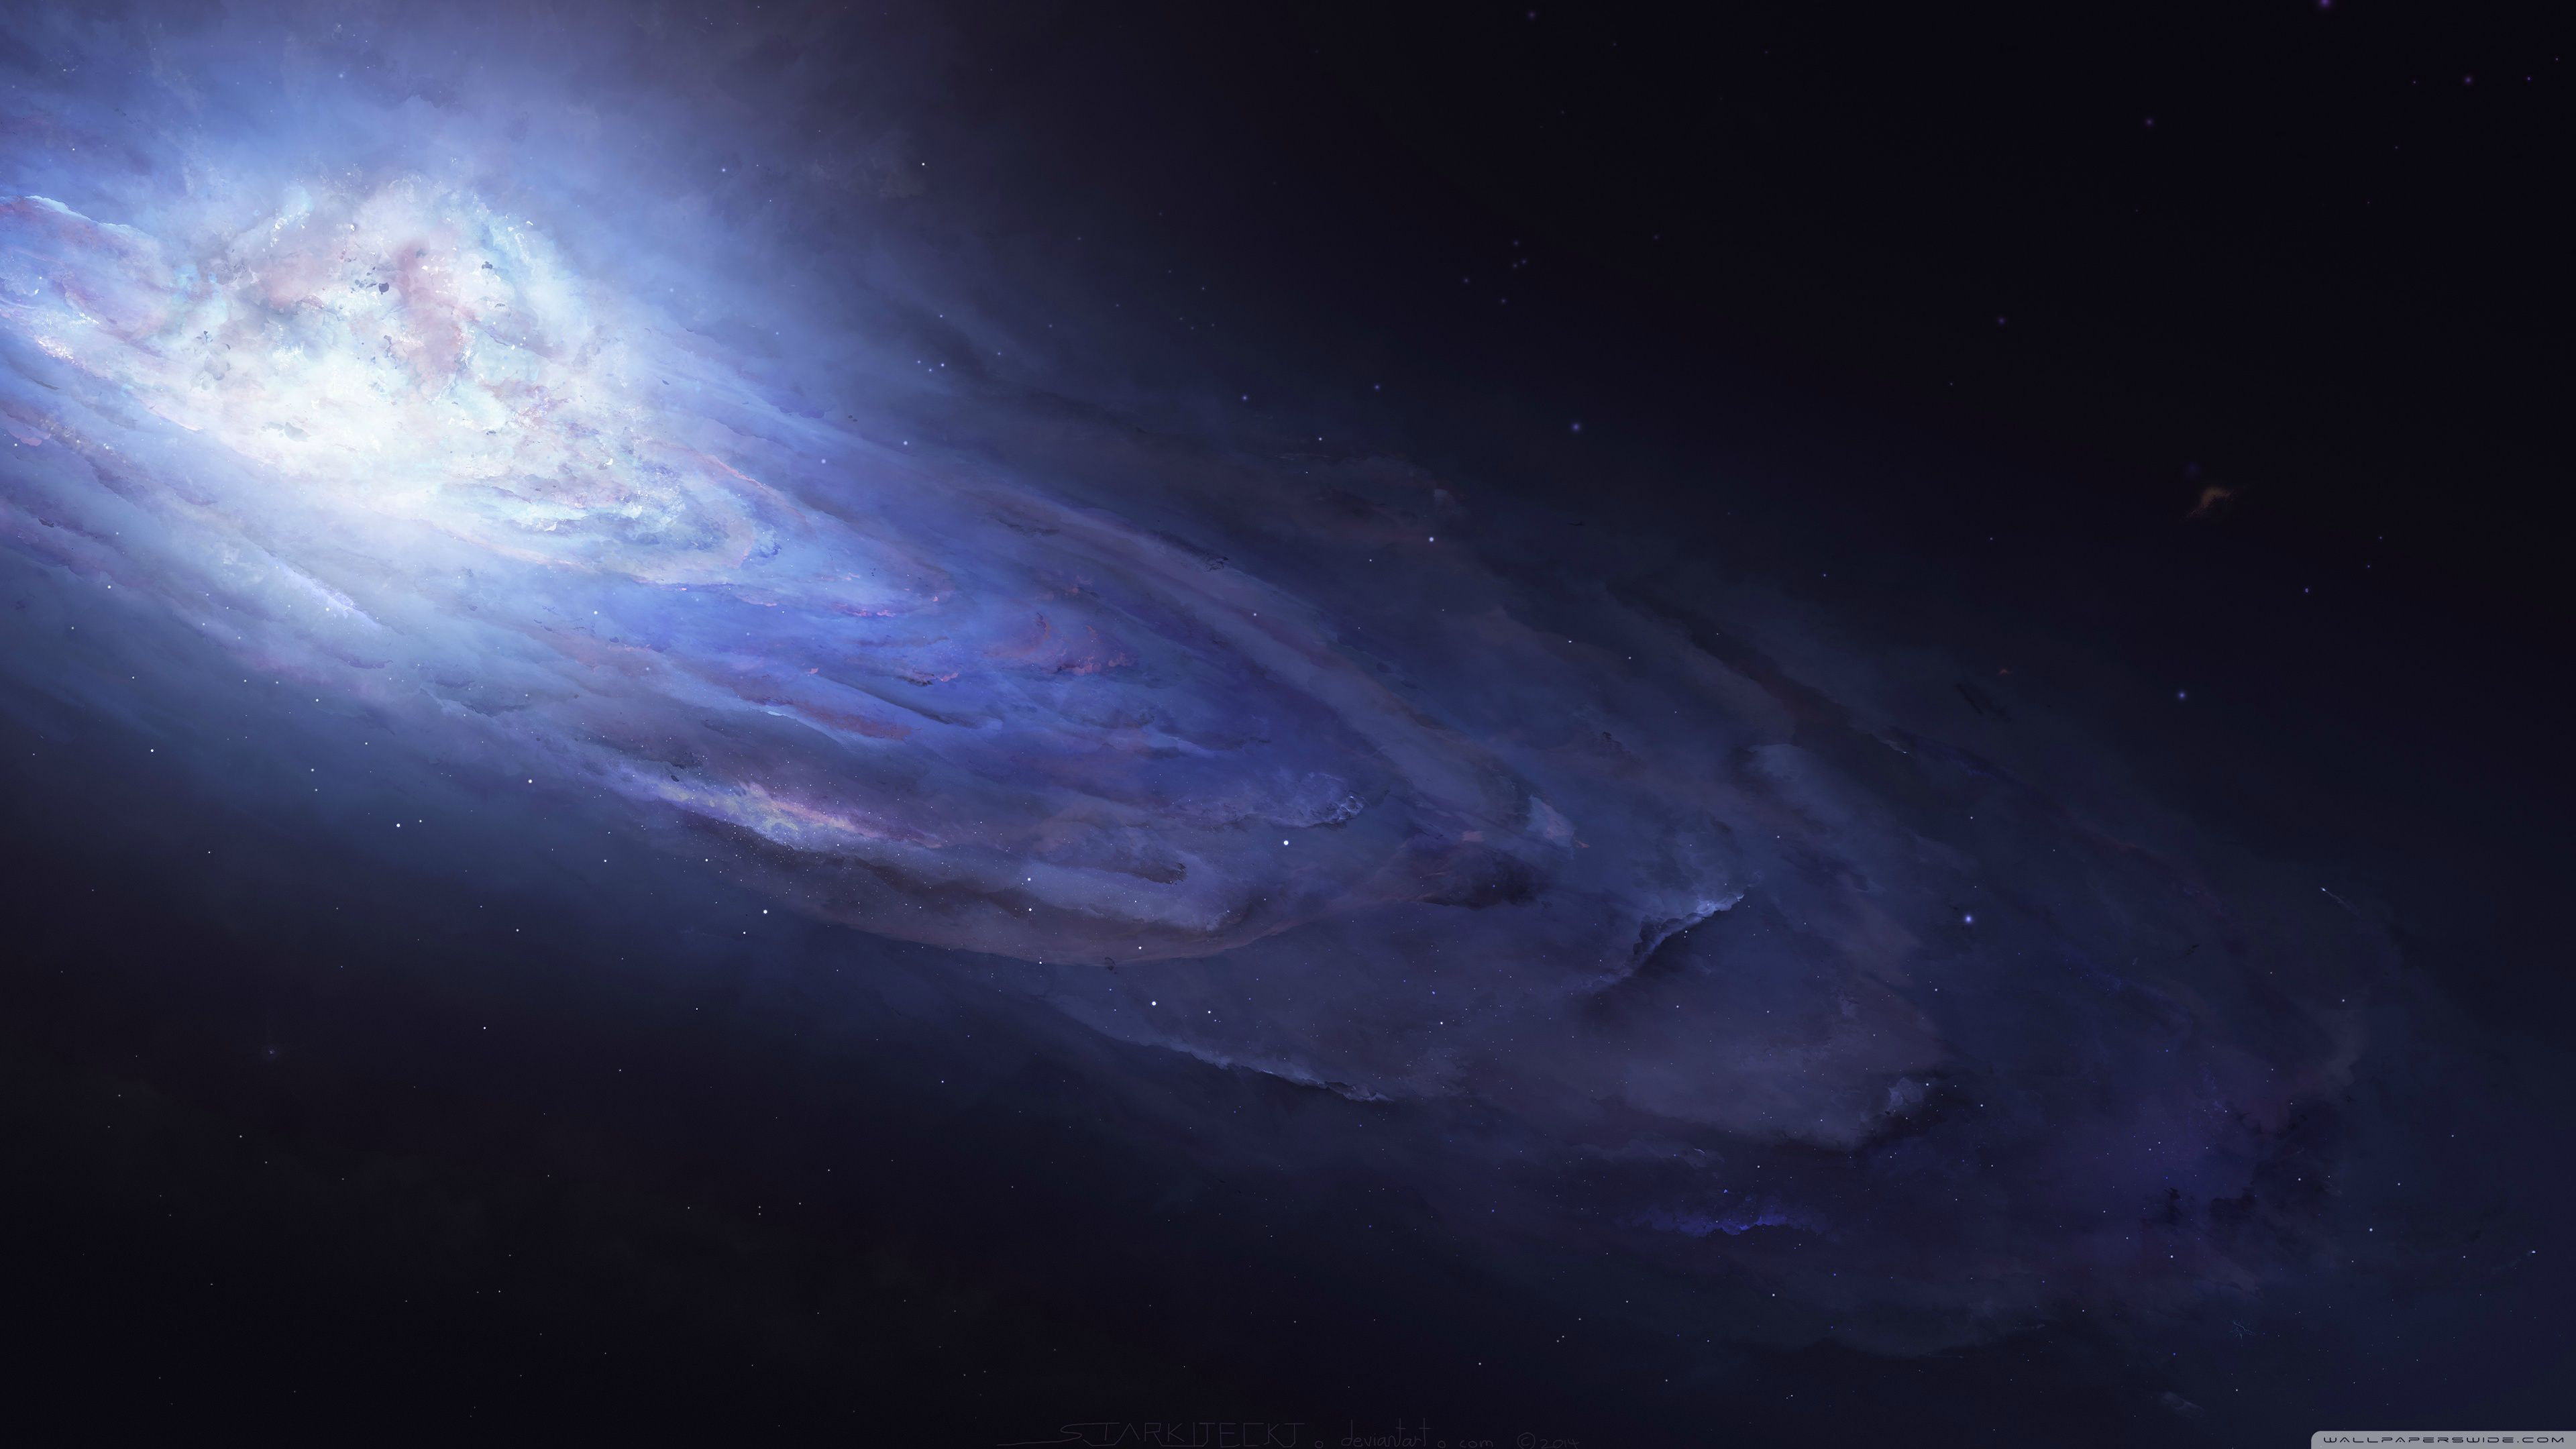 Some Ultra Hd Wallpapers Imgur Wallpaper Space Hd Galaxy Wallpaper Galaxy Wallpaper